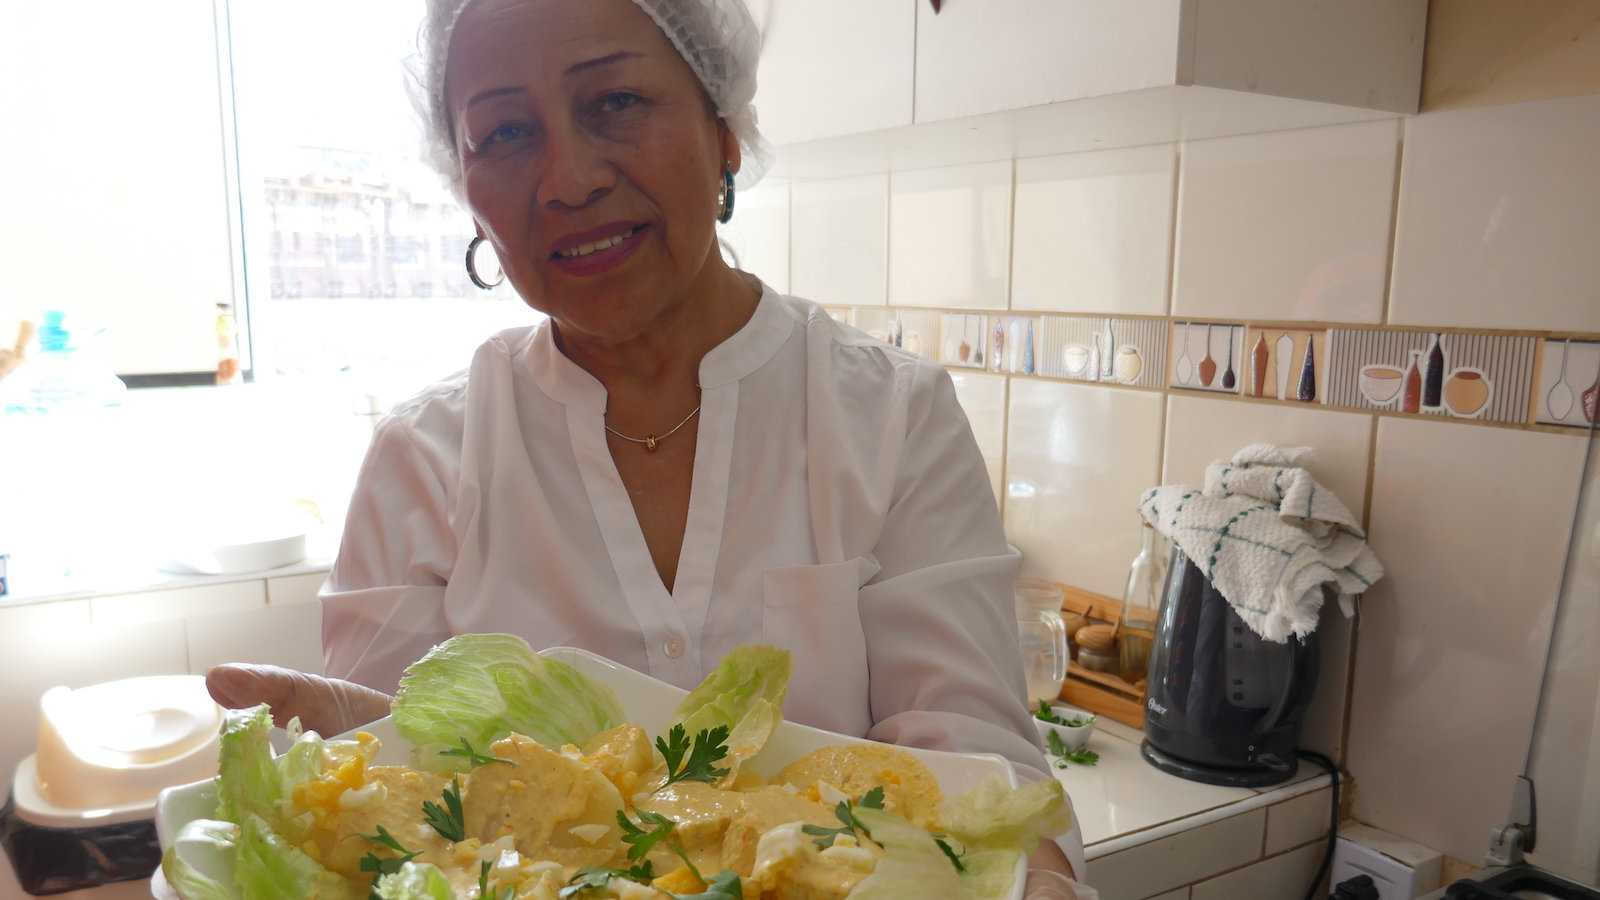 Papa a la huancaina is one of Peru's best dishes, made from their potatoes!